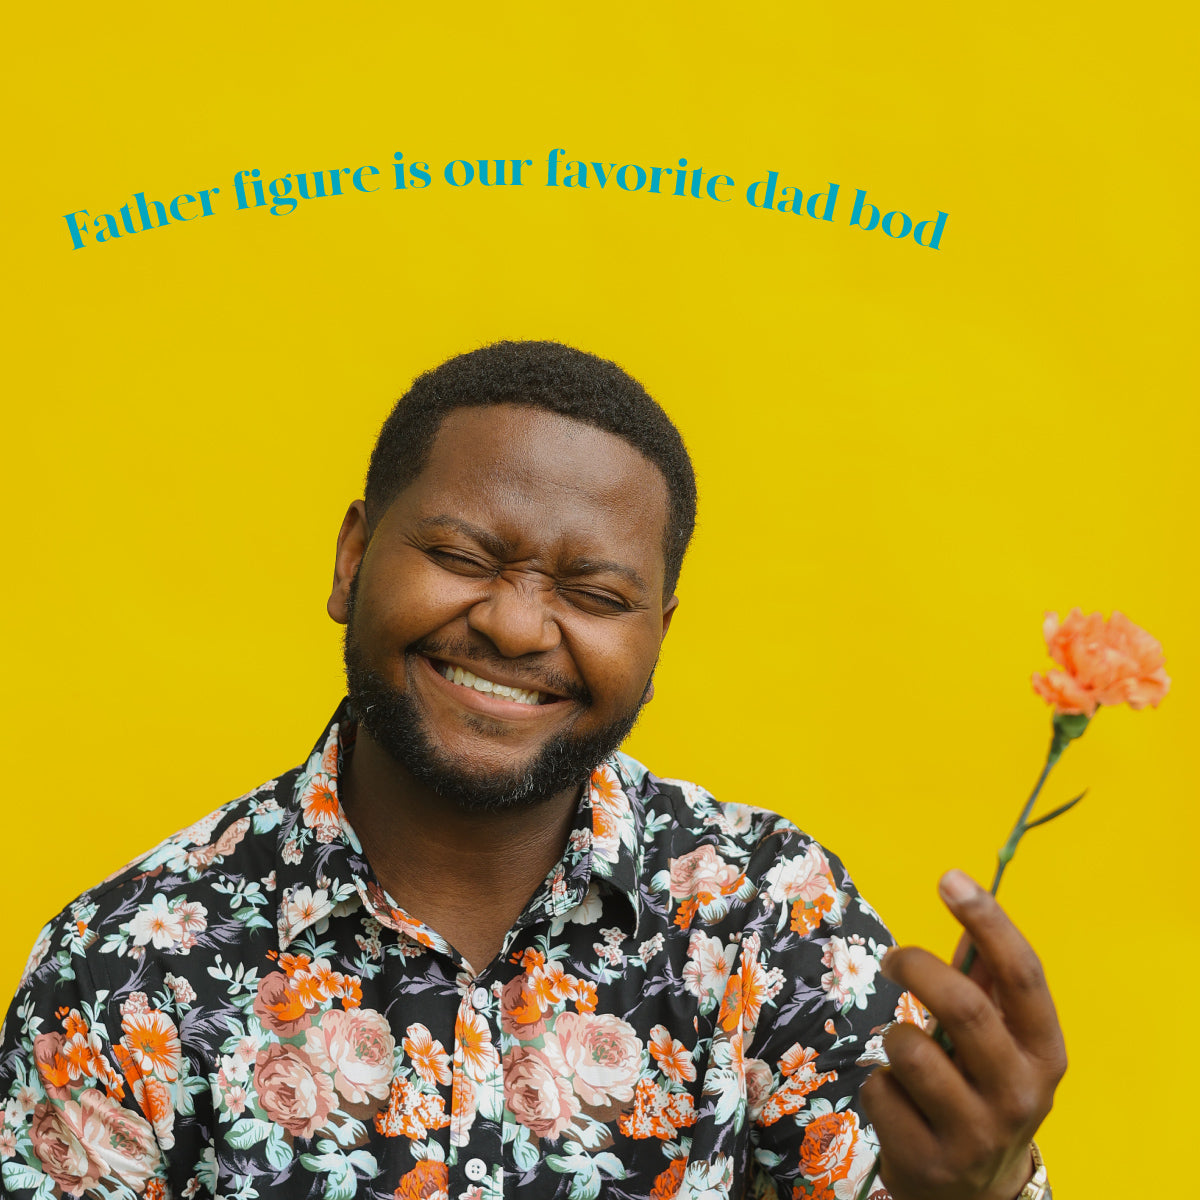 Father Figure on Yellow With Dad Joke